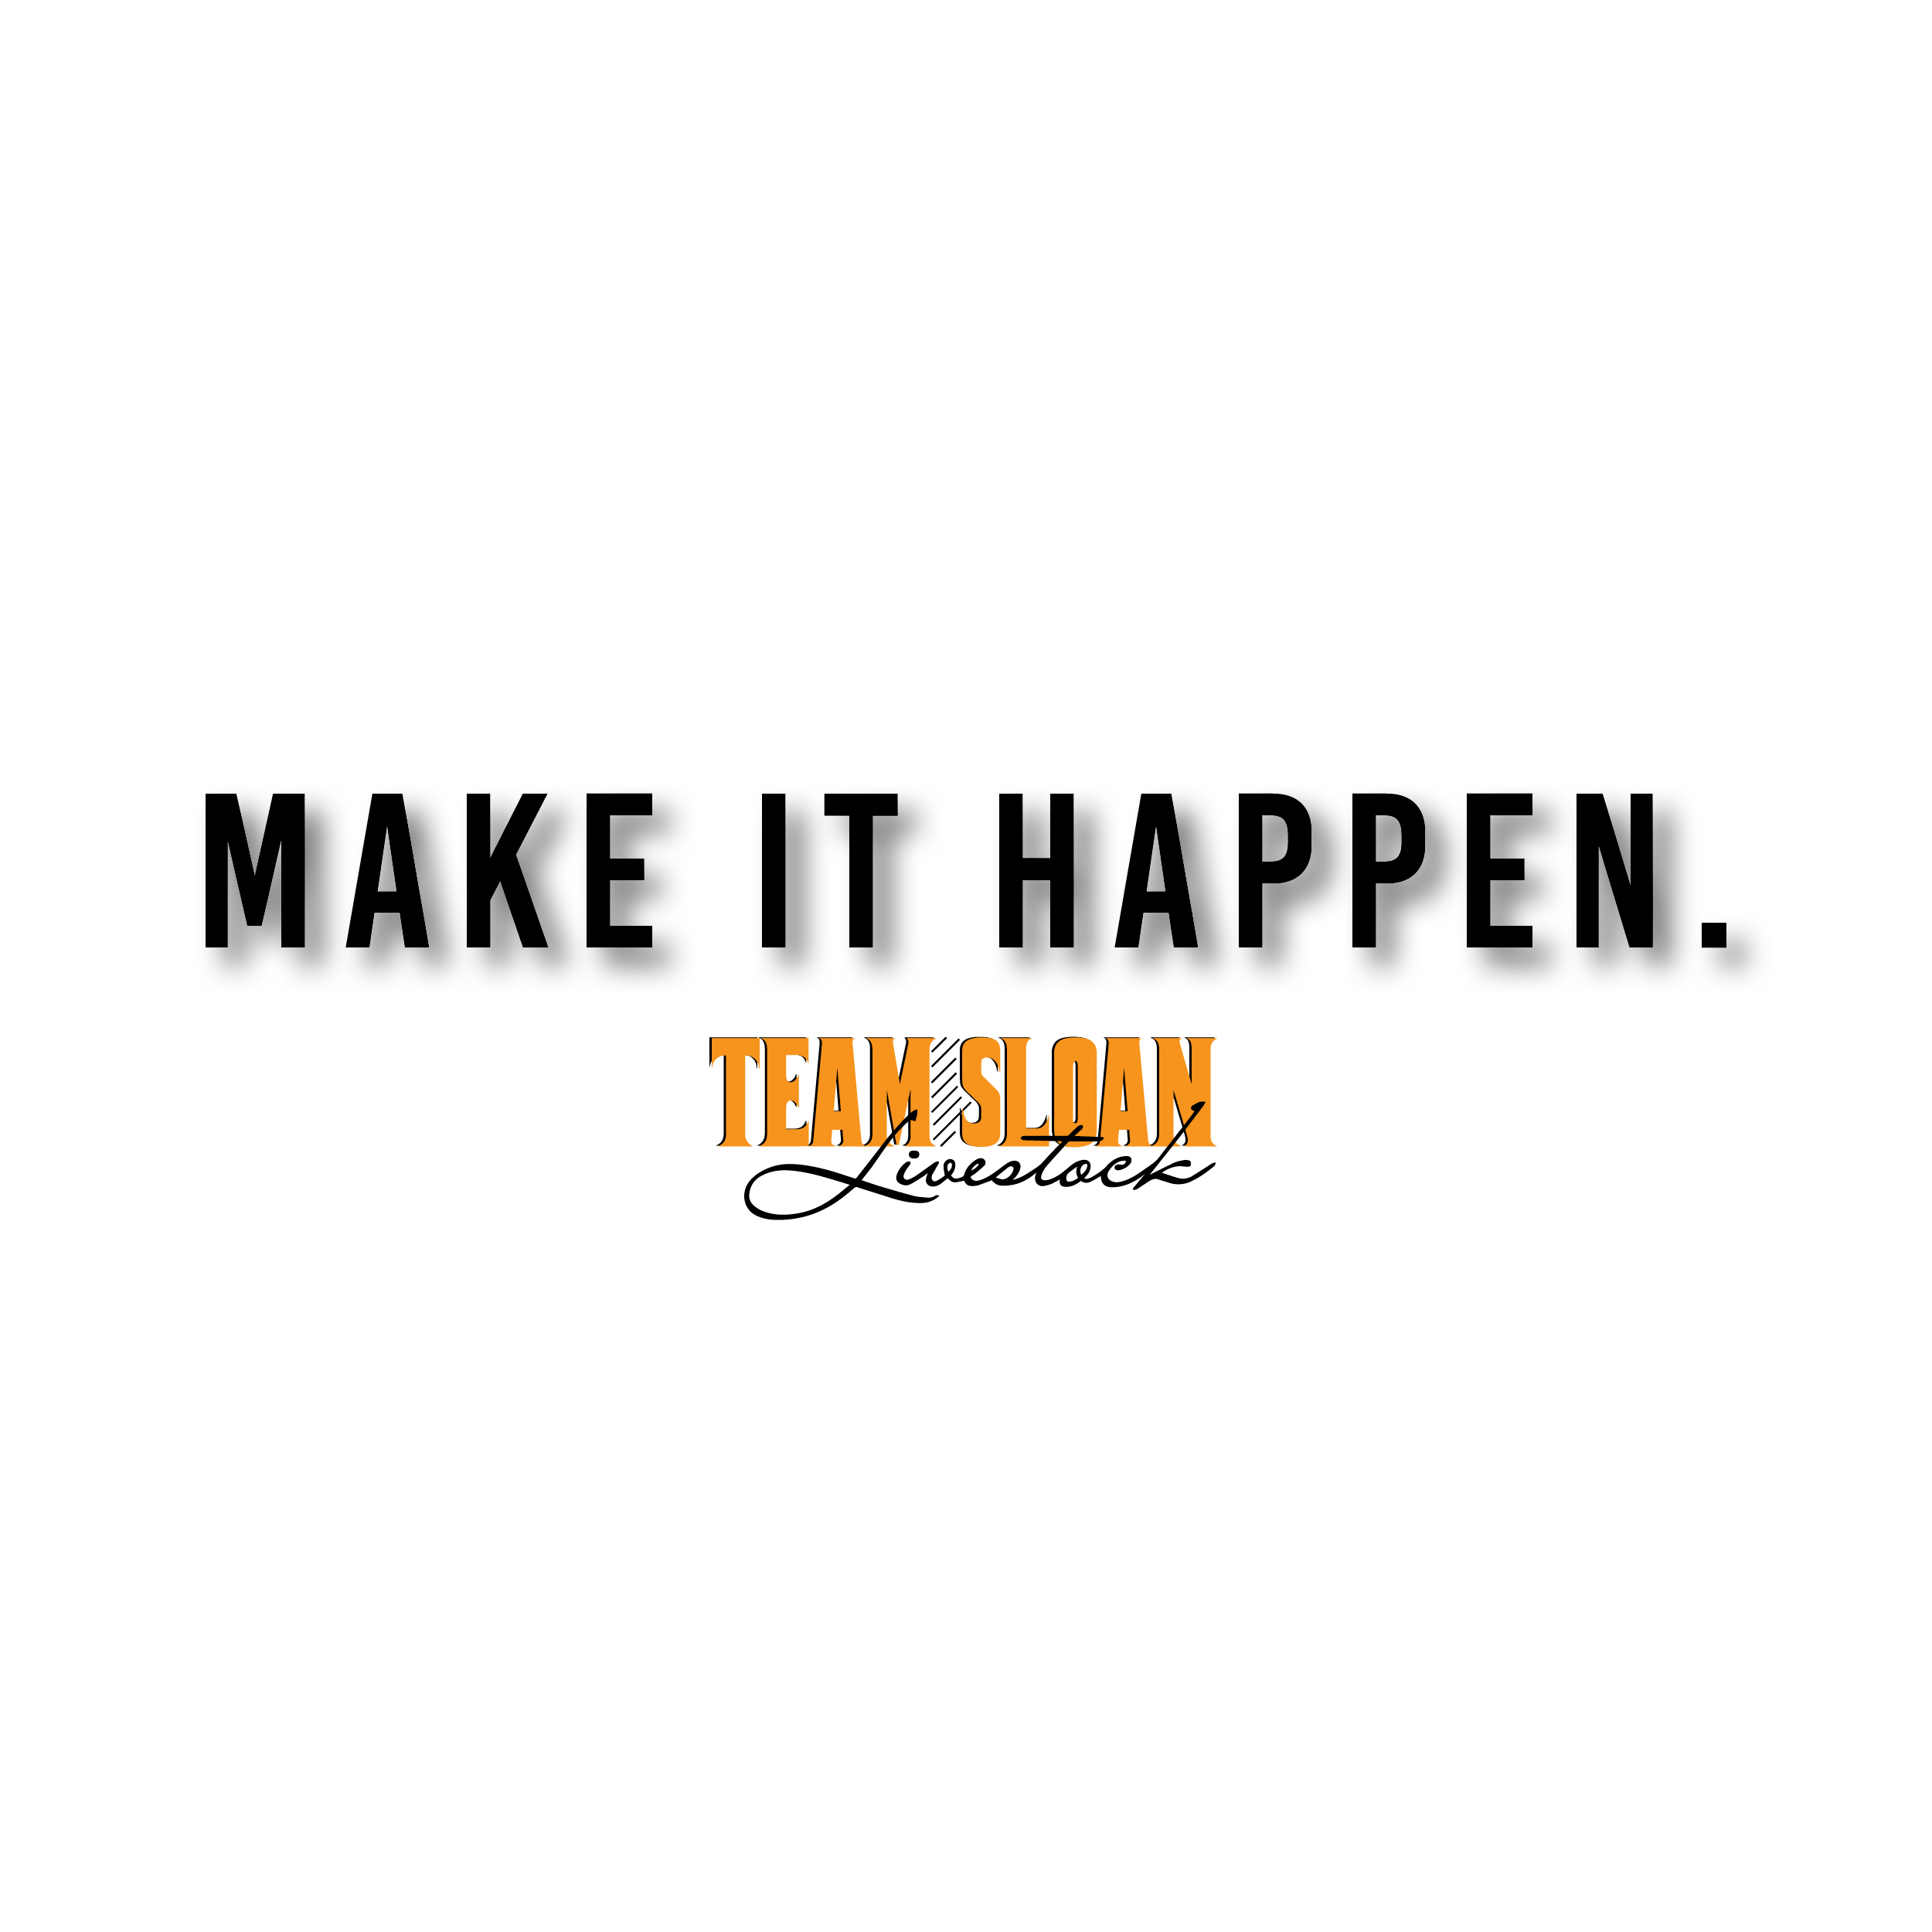 MAKE IT HAPPEN with logo.jpg